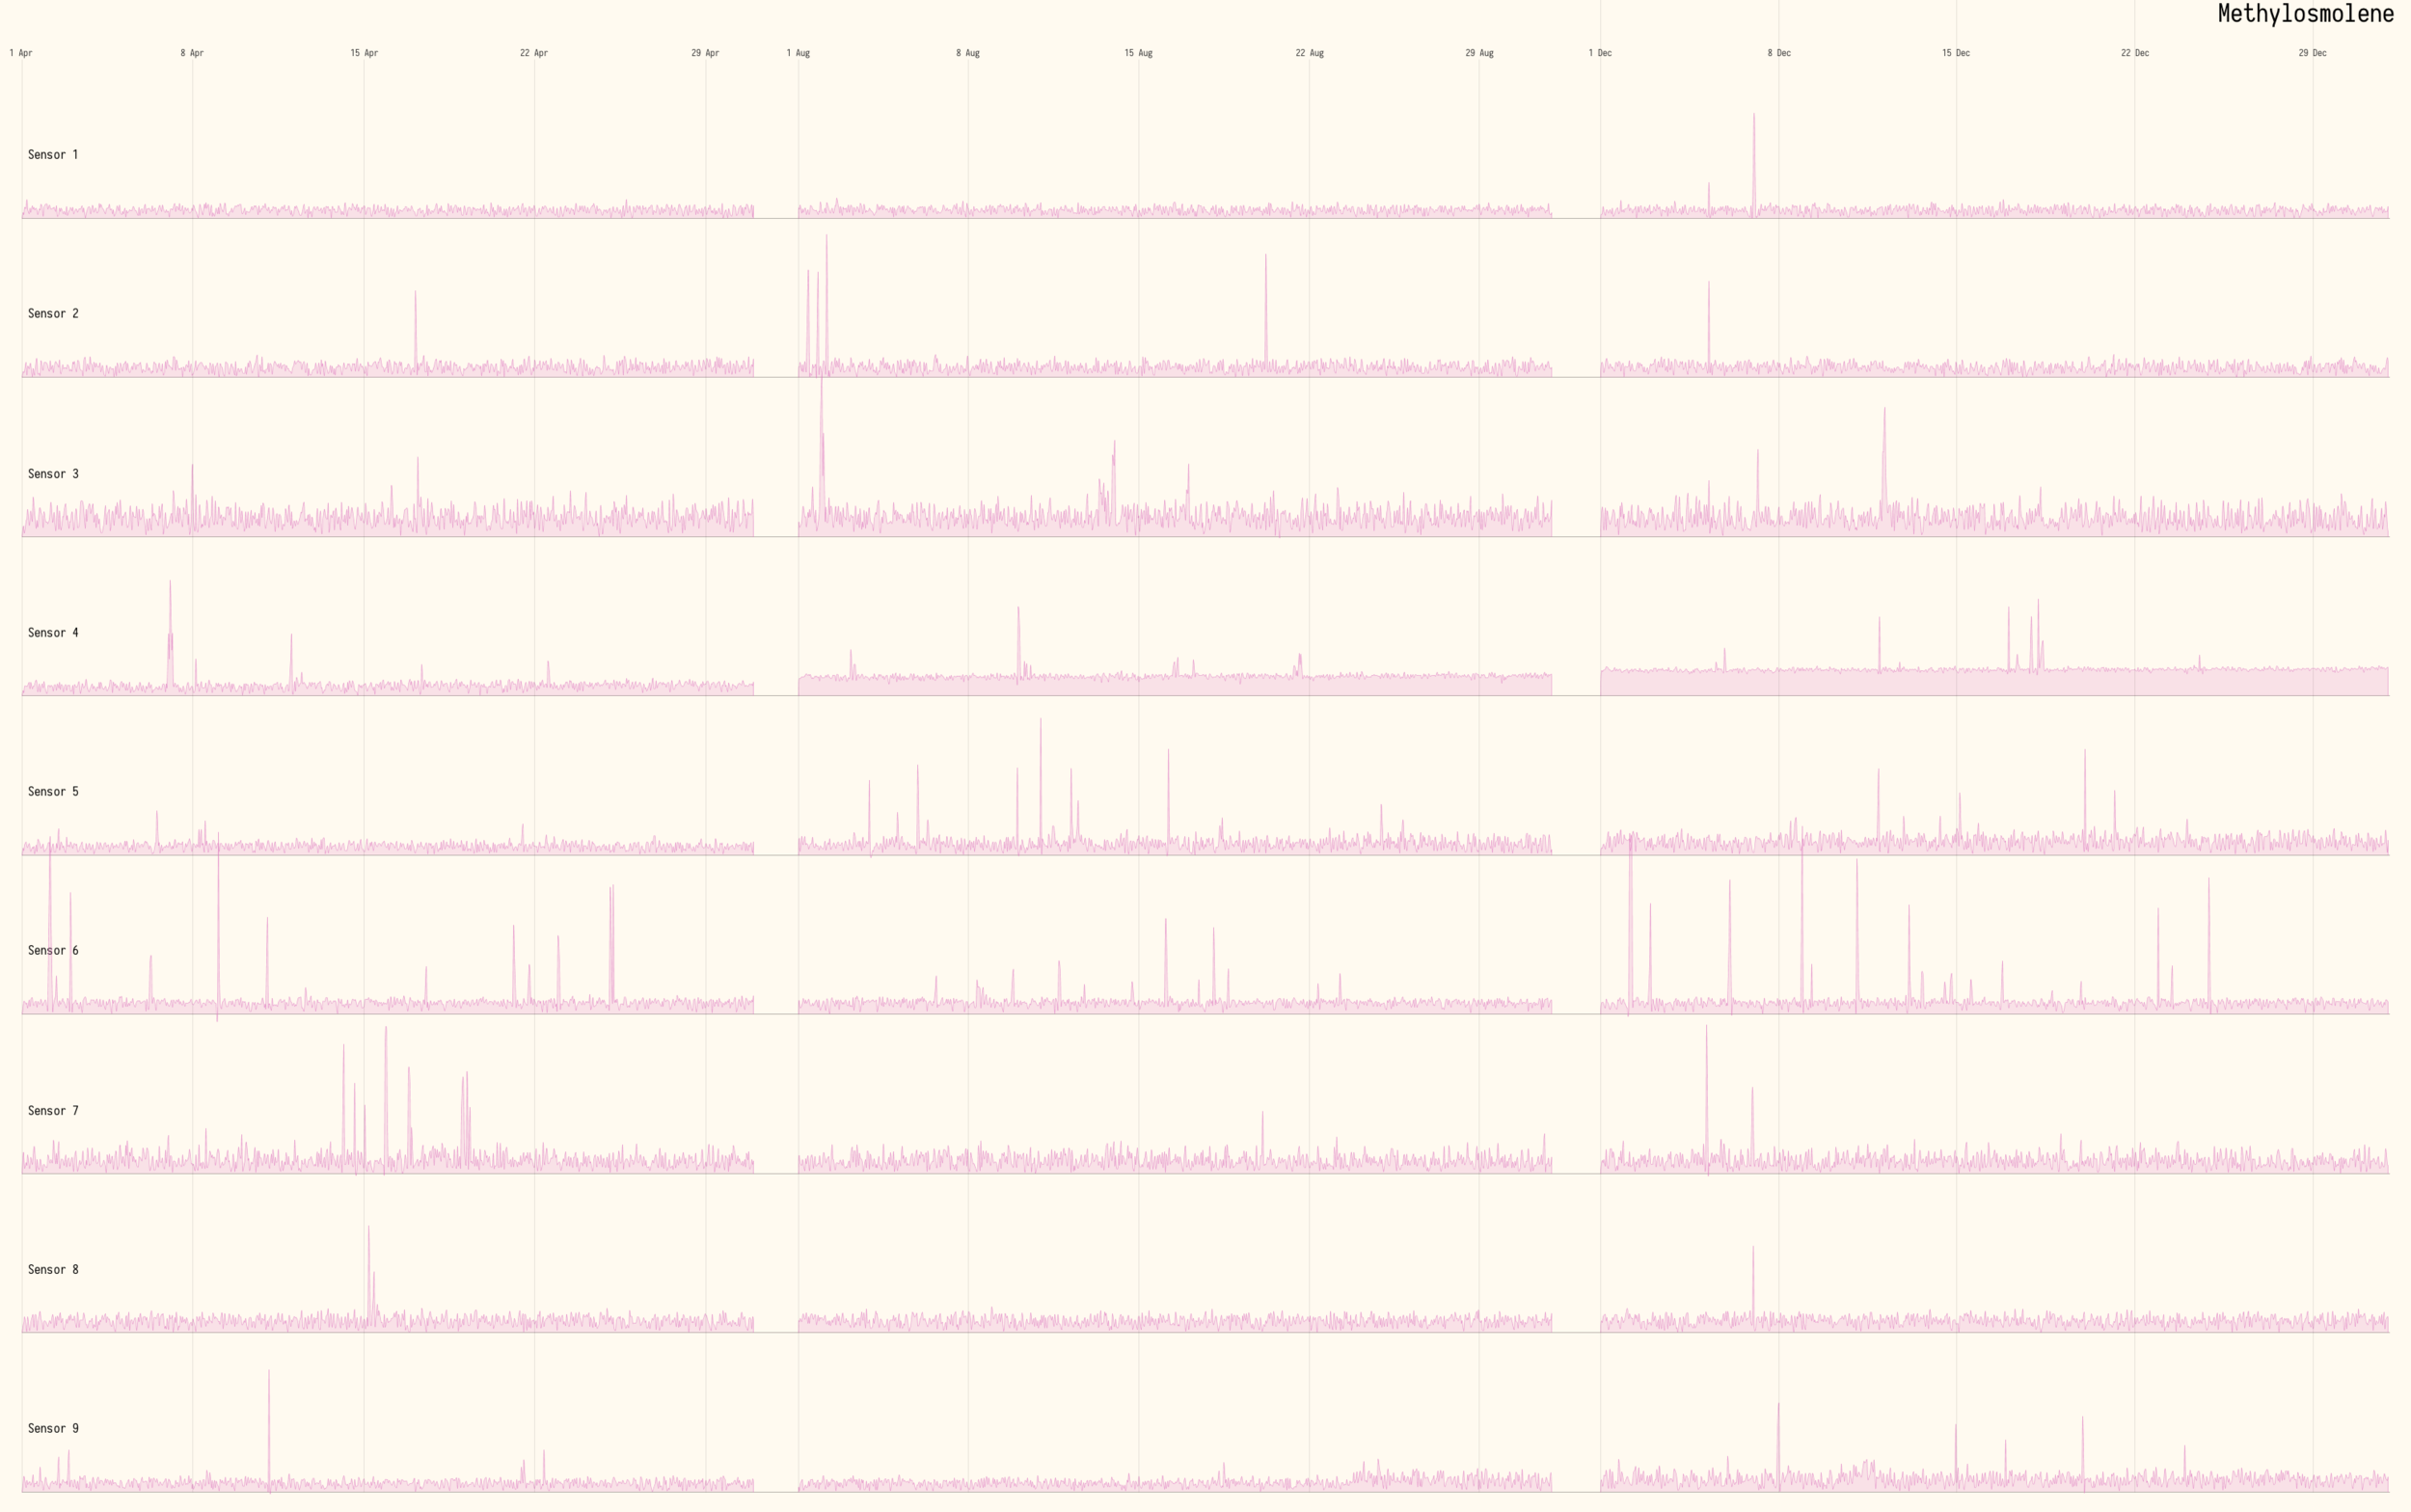 Figure 14  -Square root of Methylosmolene levels over time. All 9 sensors scaled equally.